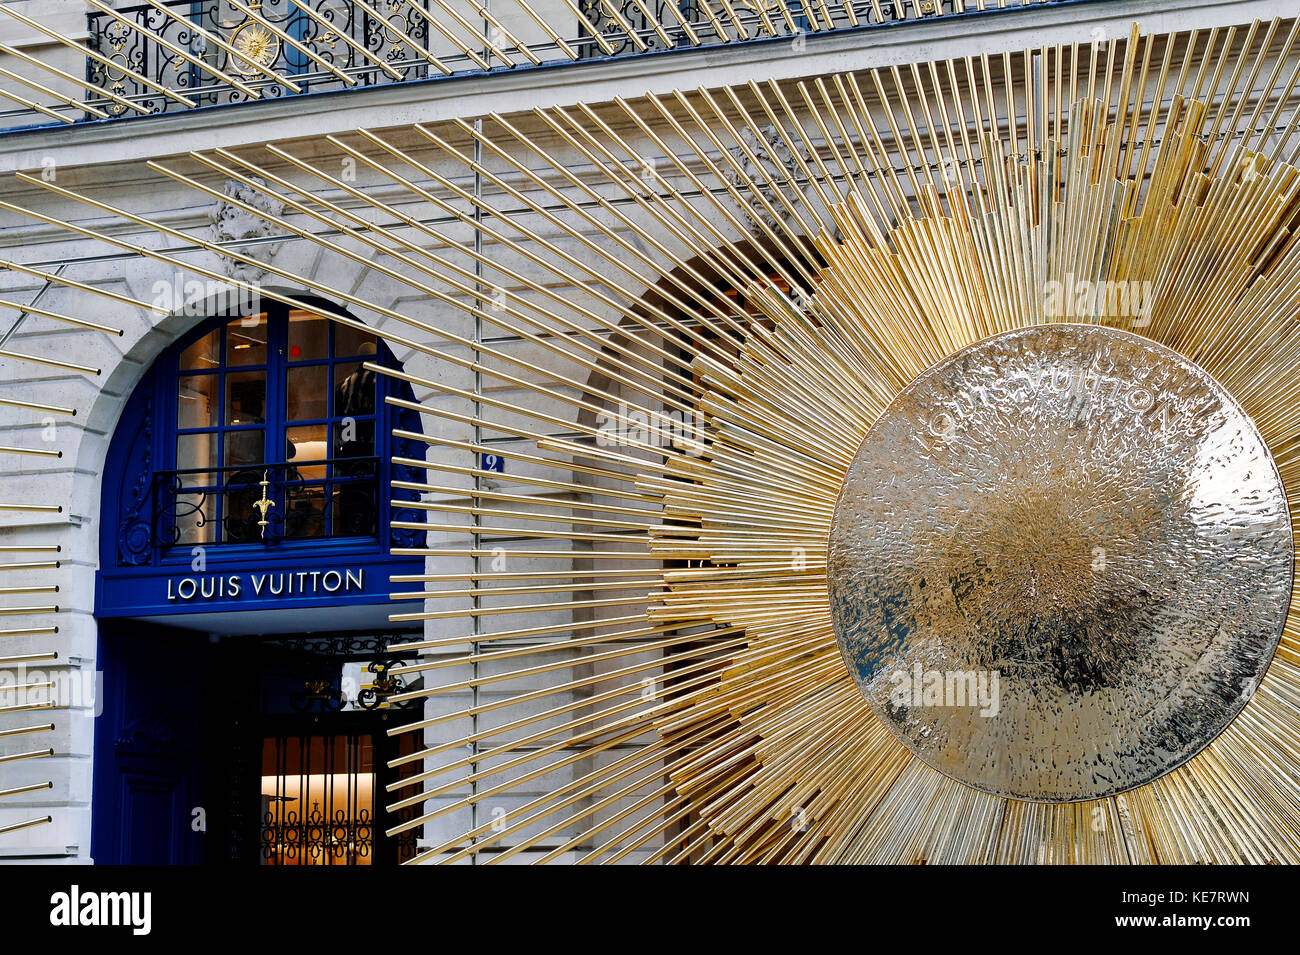 Louis Vuitton flagship store, place Vendôme, Paris - France - Stock Image